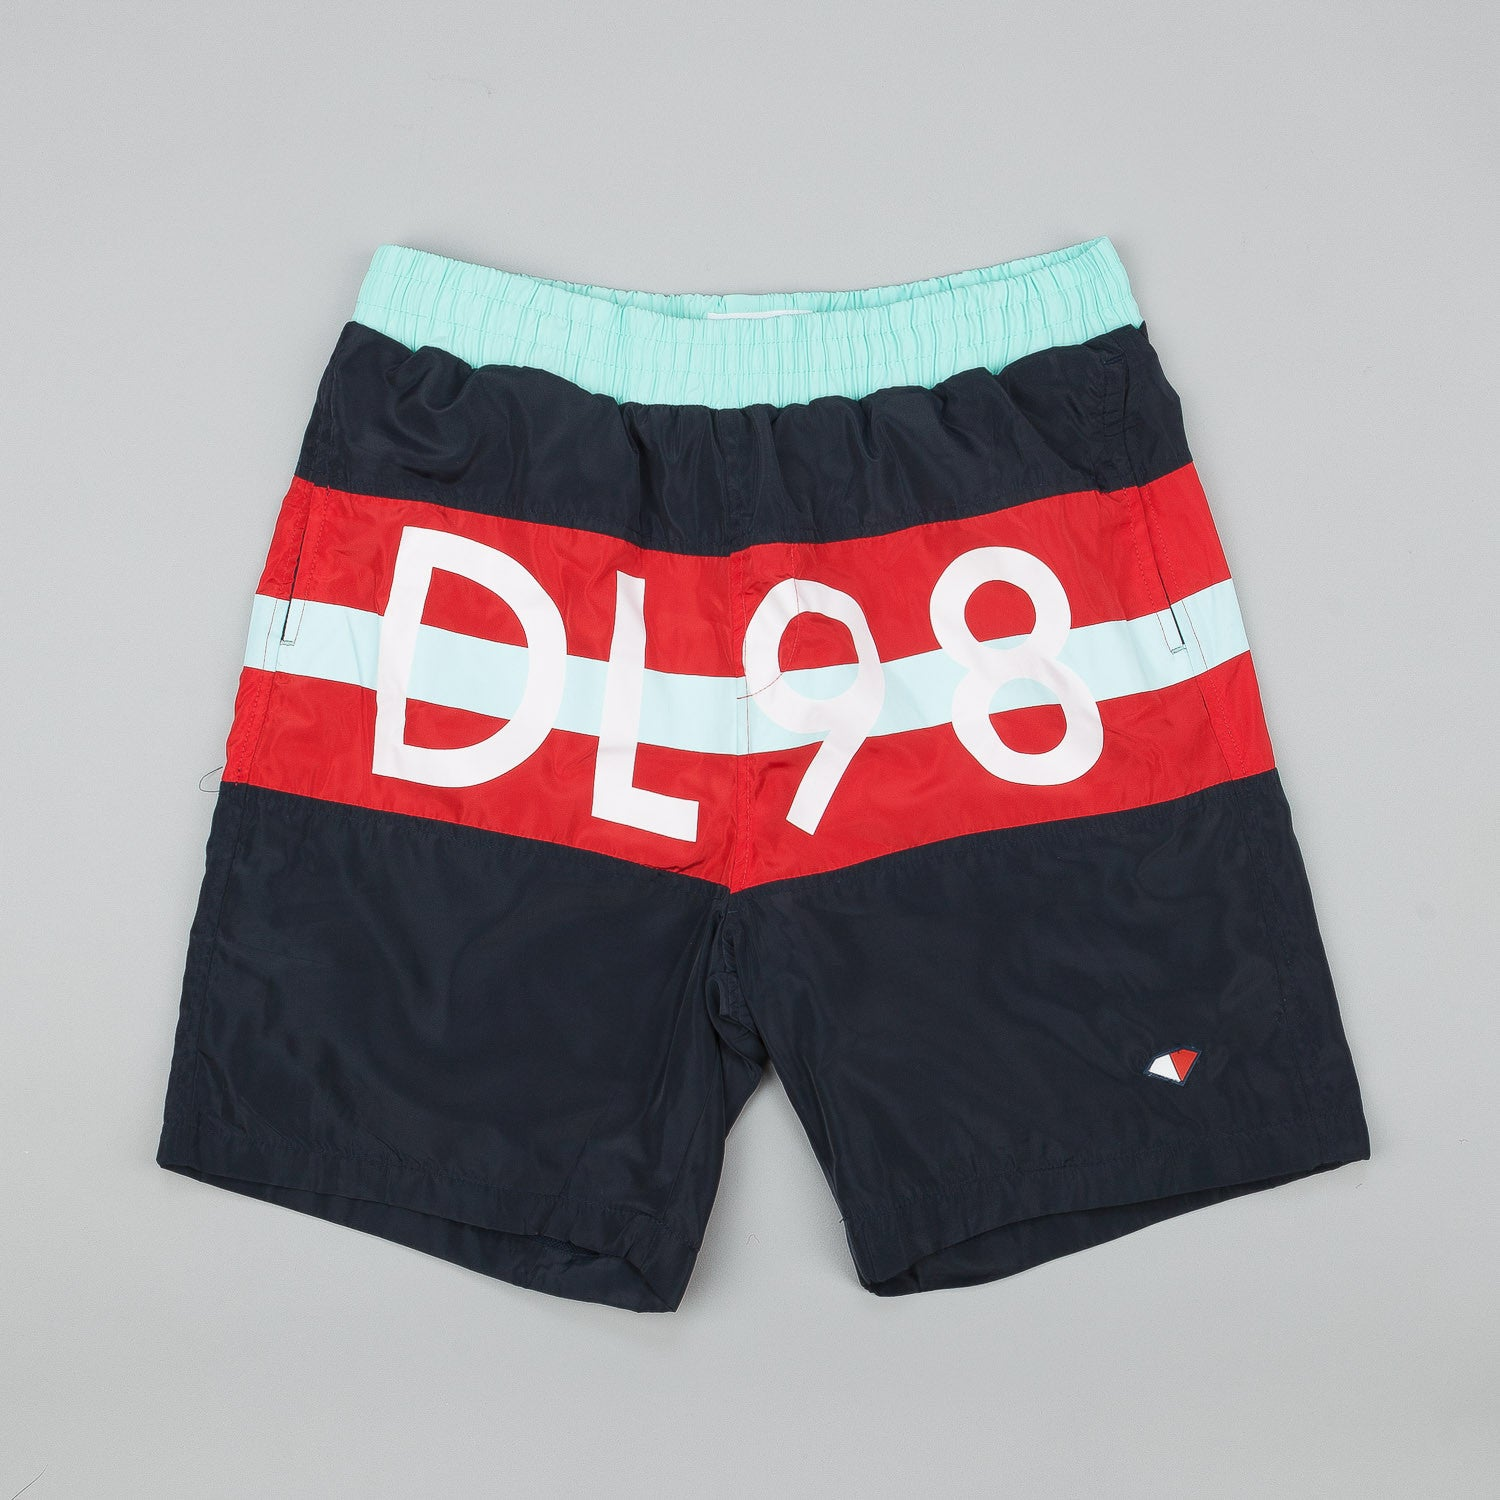 "Diamond DLYC Short 9-1/2"" - Navy"